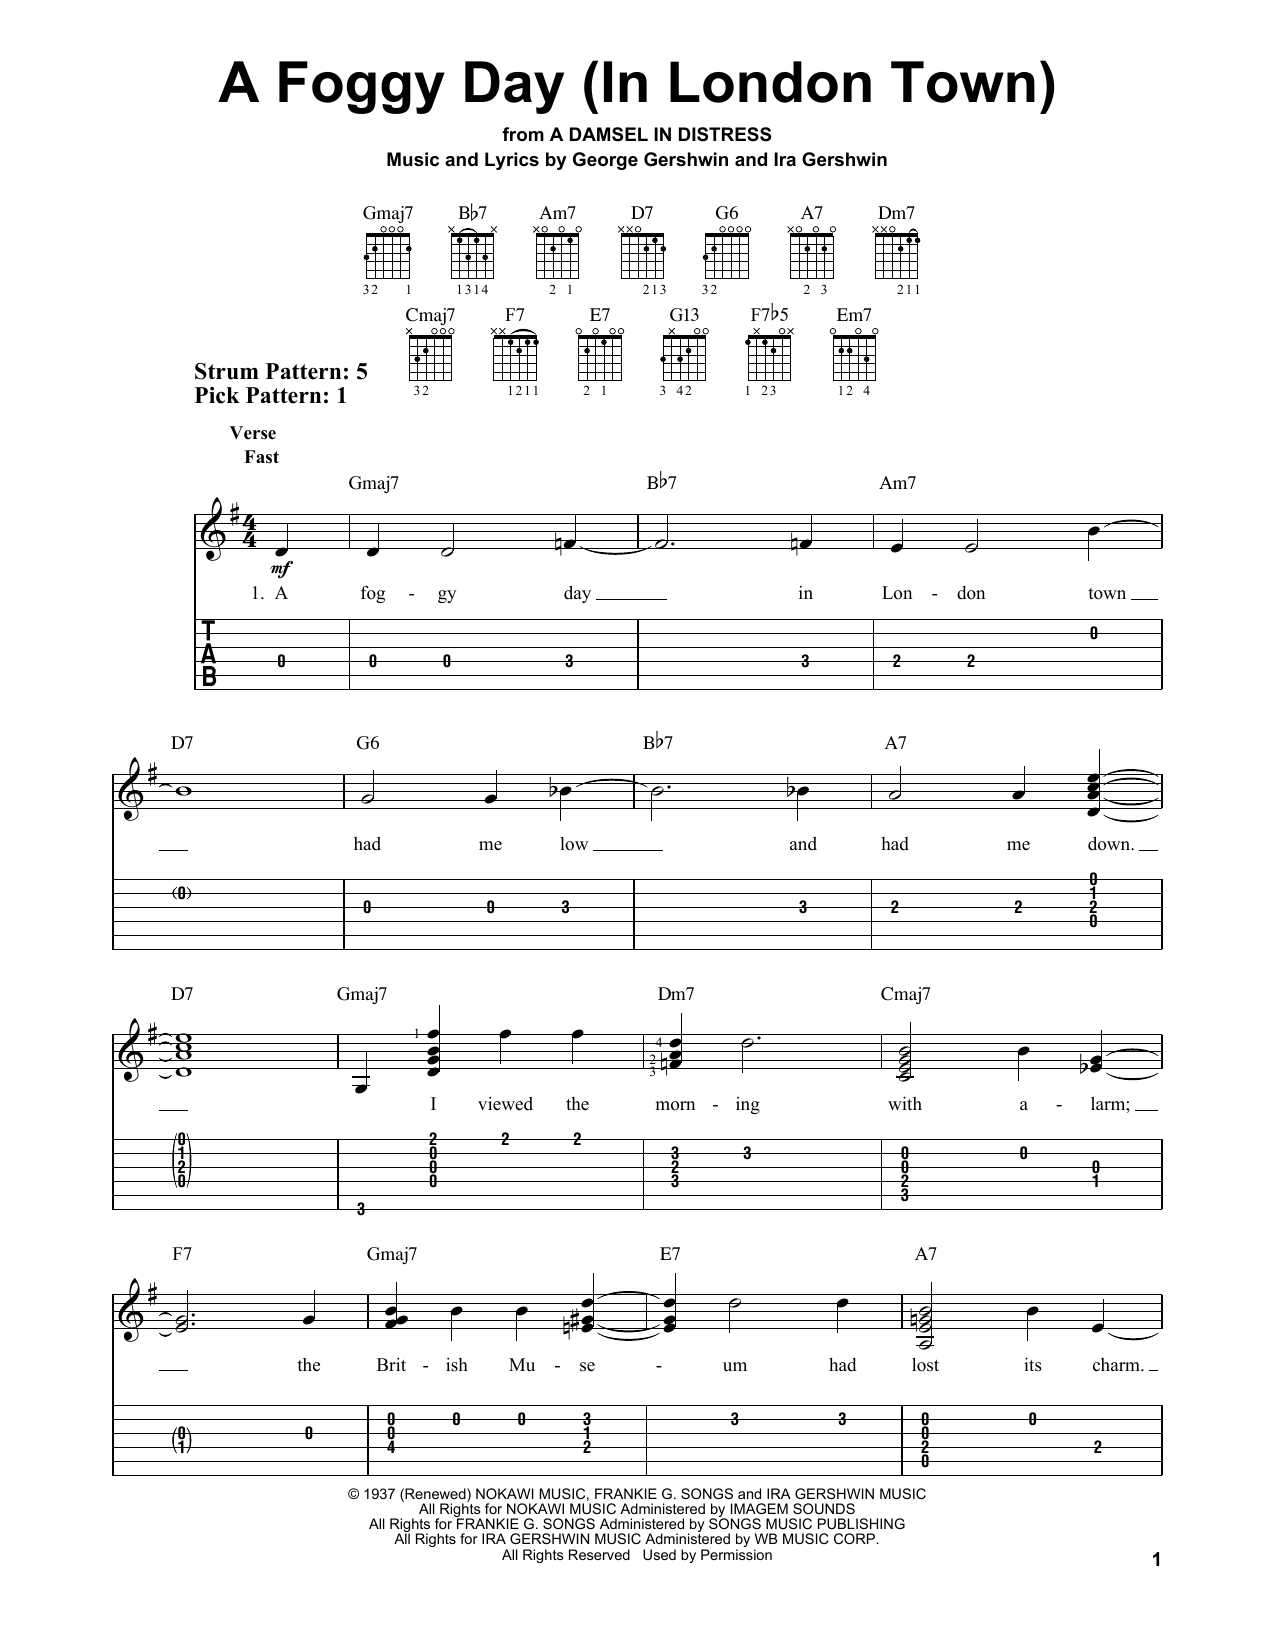 George Gershwin A Foggy Day (In London Town) sheet music notes and chords. Download Printable PDF.